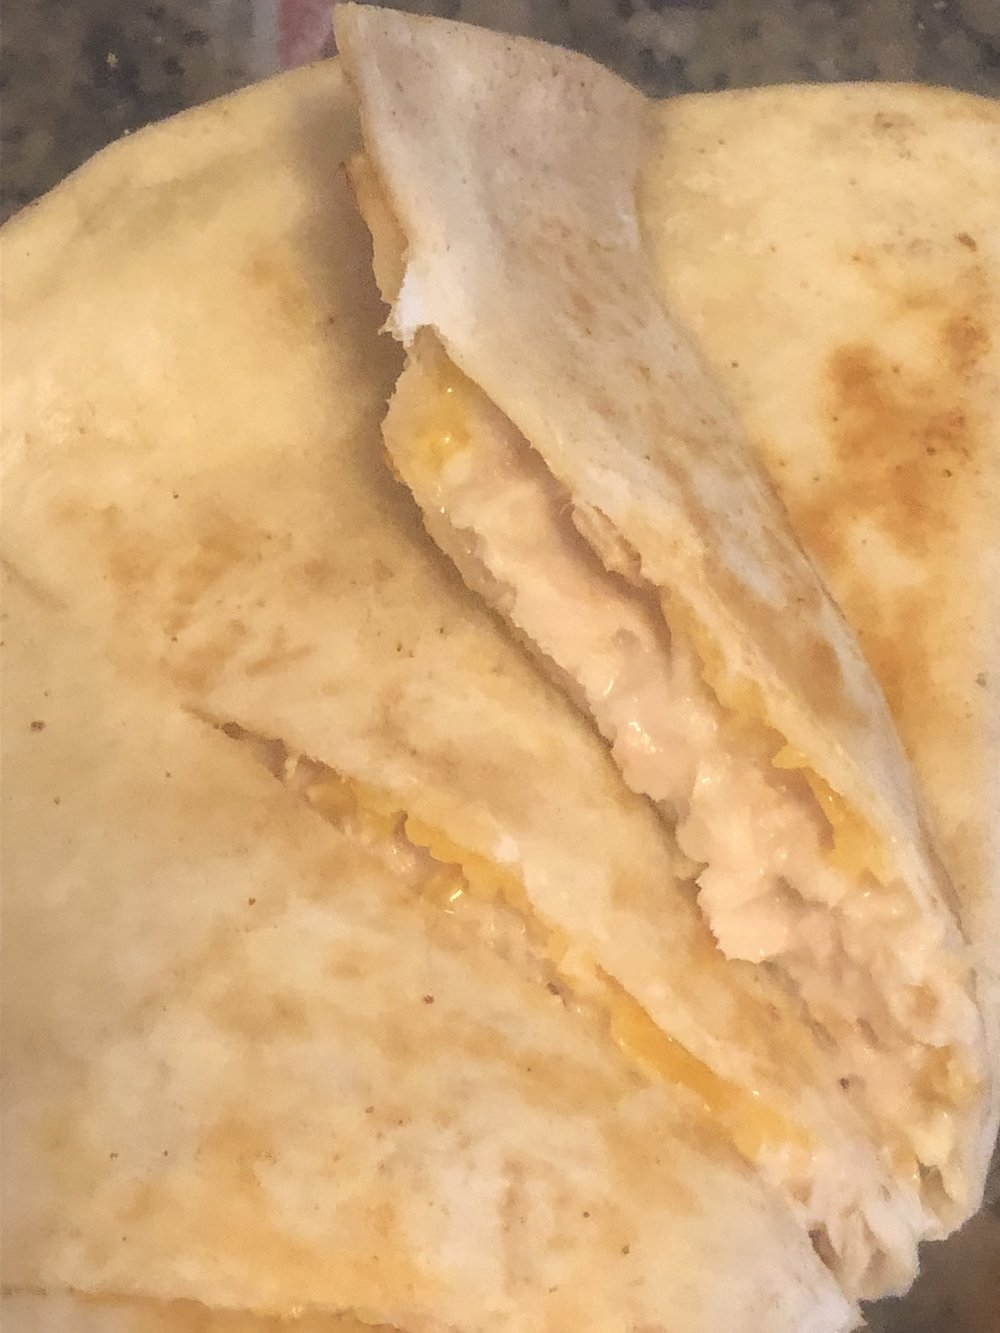 Ingredients  can of tunafish (white/albacore) - I used bumblee  2 tbls of mayonnaise  medium pan sized flour quesadillas  shredded (preshreded or shred your own) cheddar cheese  for garnish - barbecue sauce or salsa  pat of butter